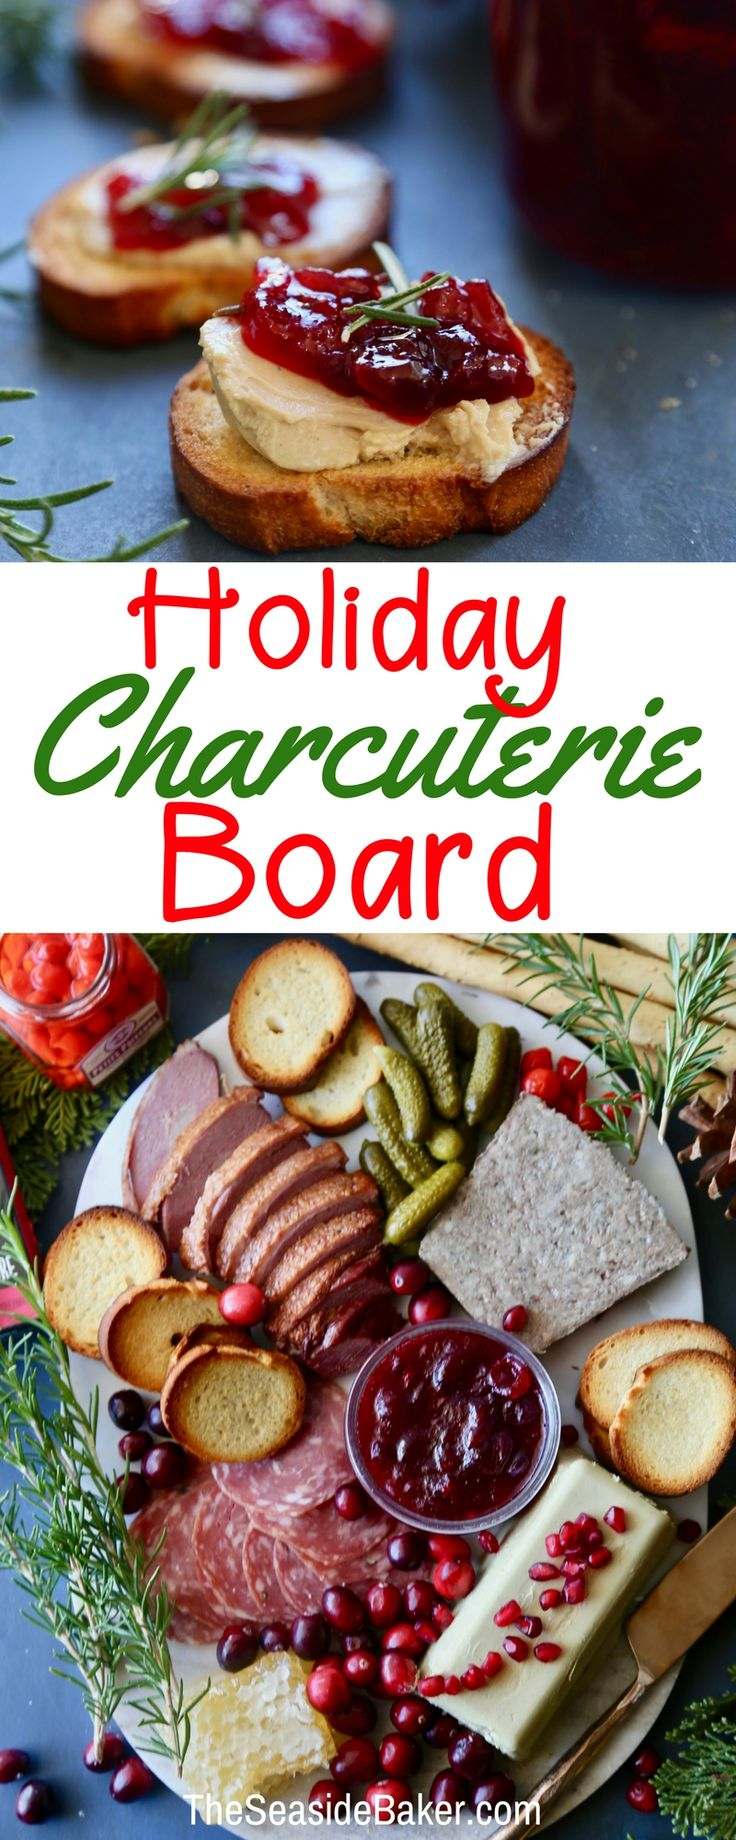 A Holiday Charcuterie Board Your Guests Won't Soon Forget! | Ideas | Ingredients | And how to build and display one perfect for entertaining! | theseasidebaker.com | #charcuterie #Unboardyourboard with #3pigspate instead! AD